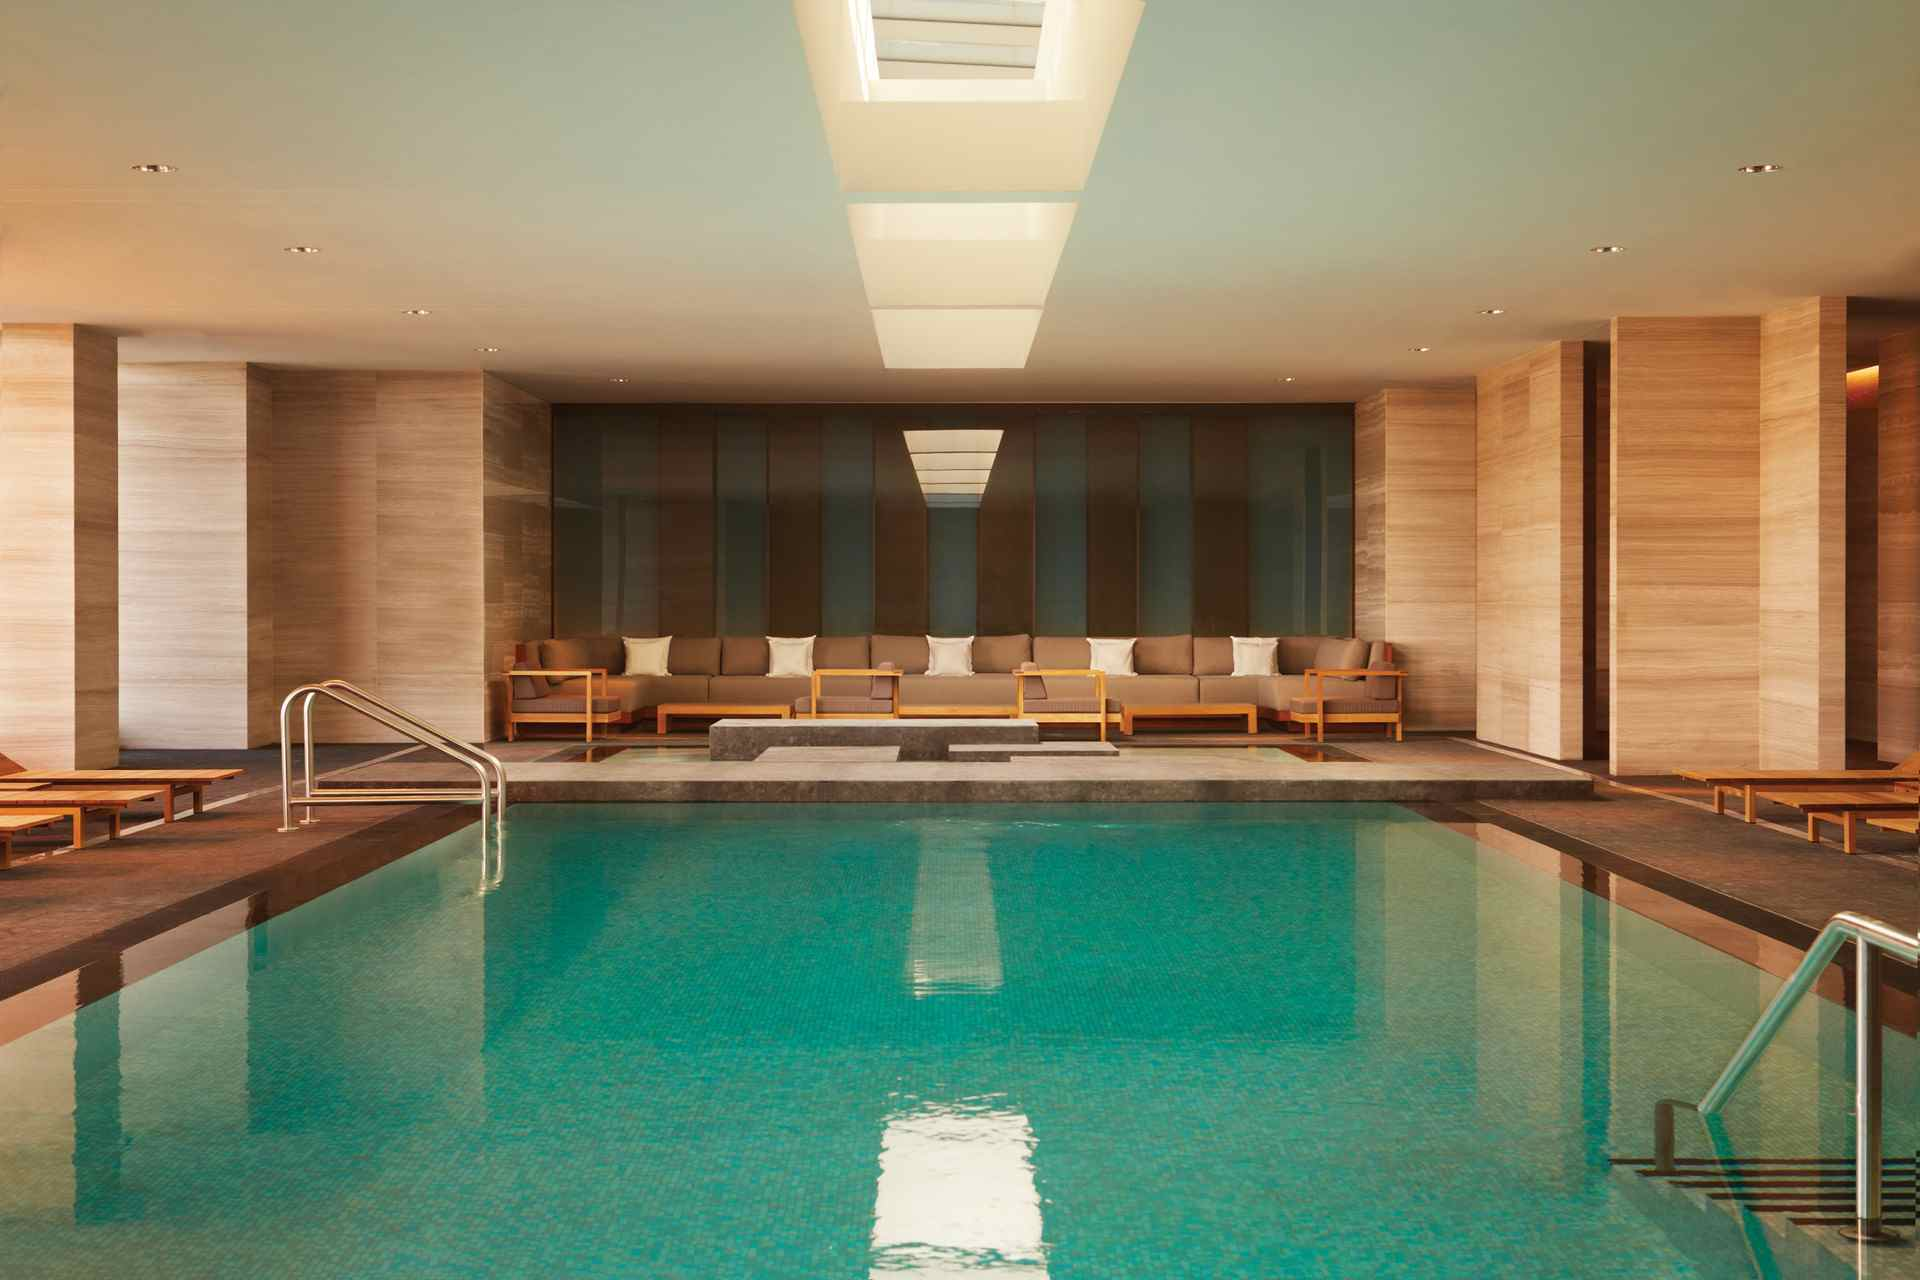 Four Seasons Toronto Pool